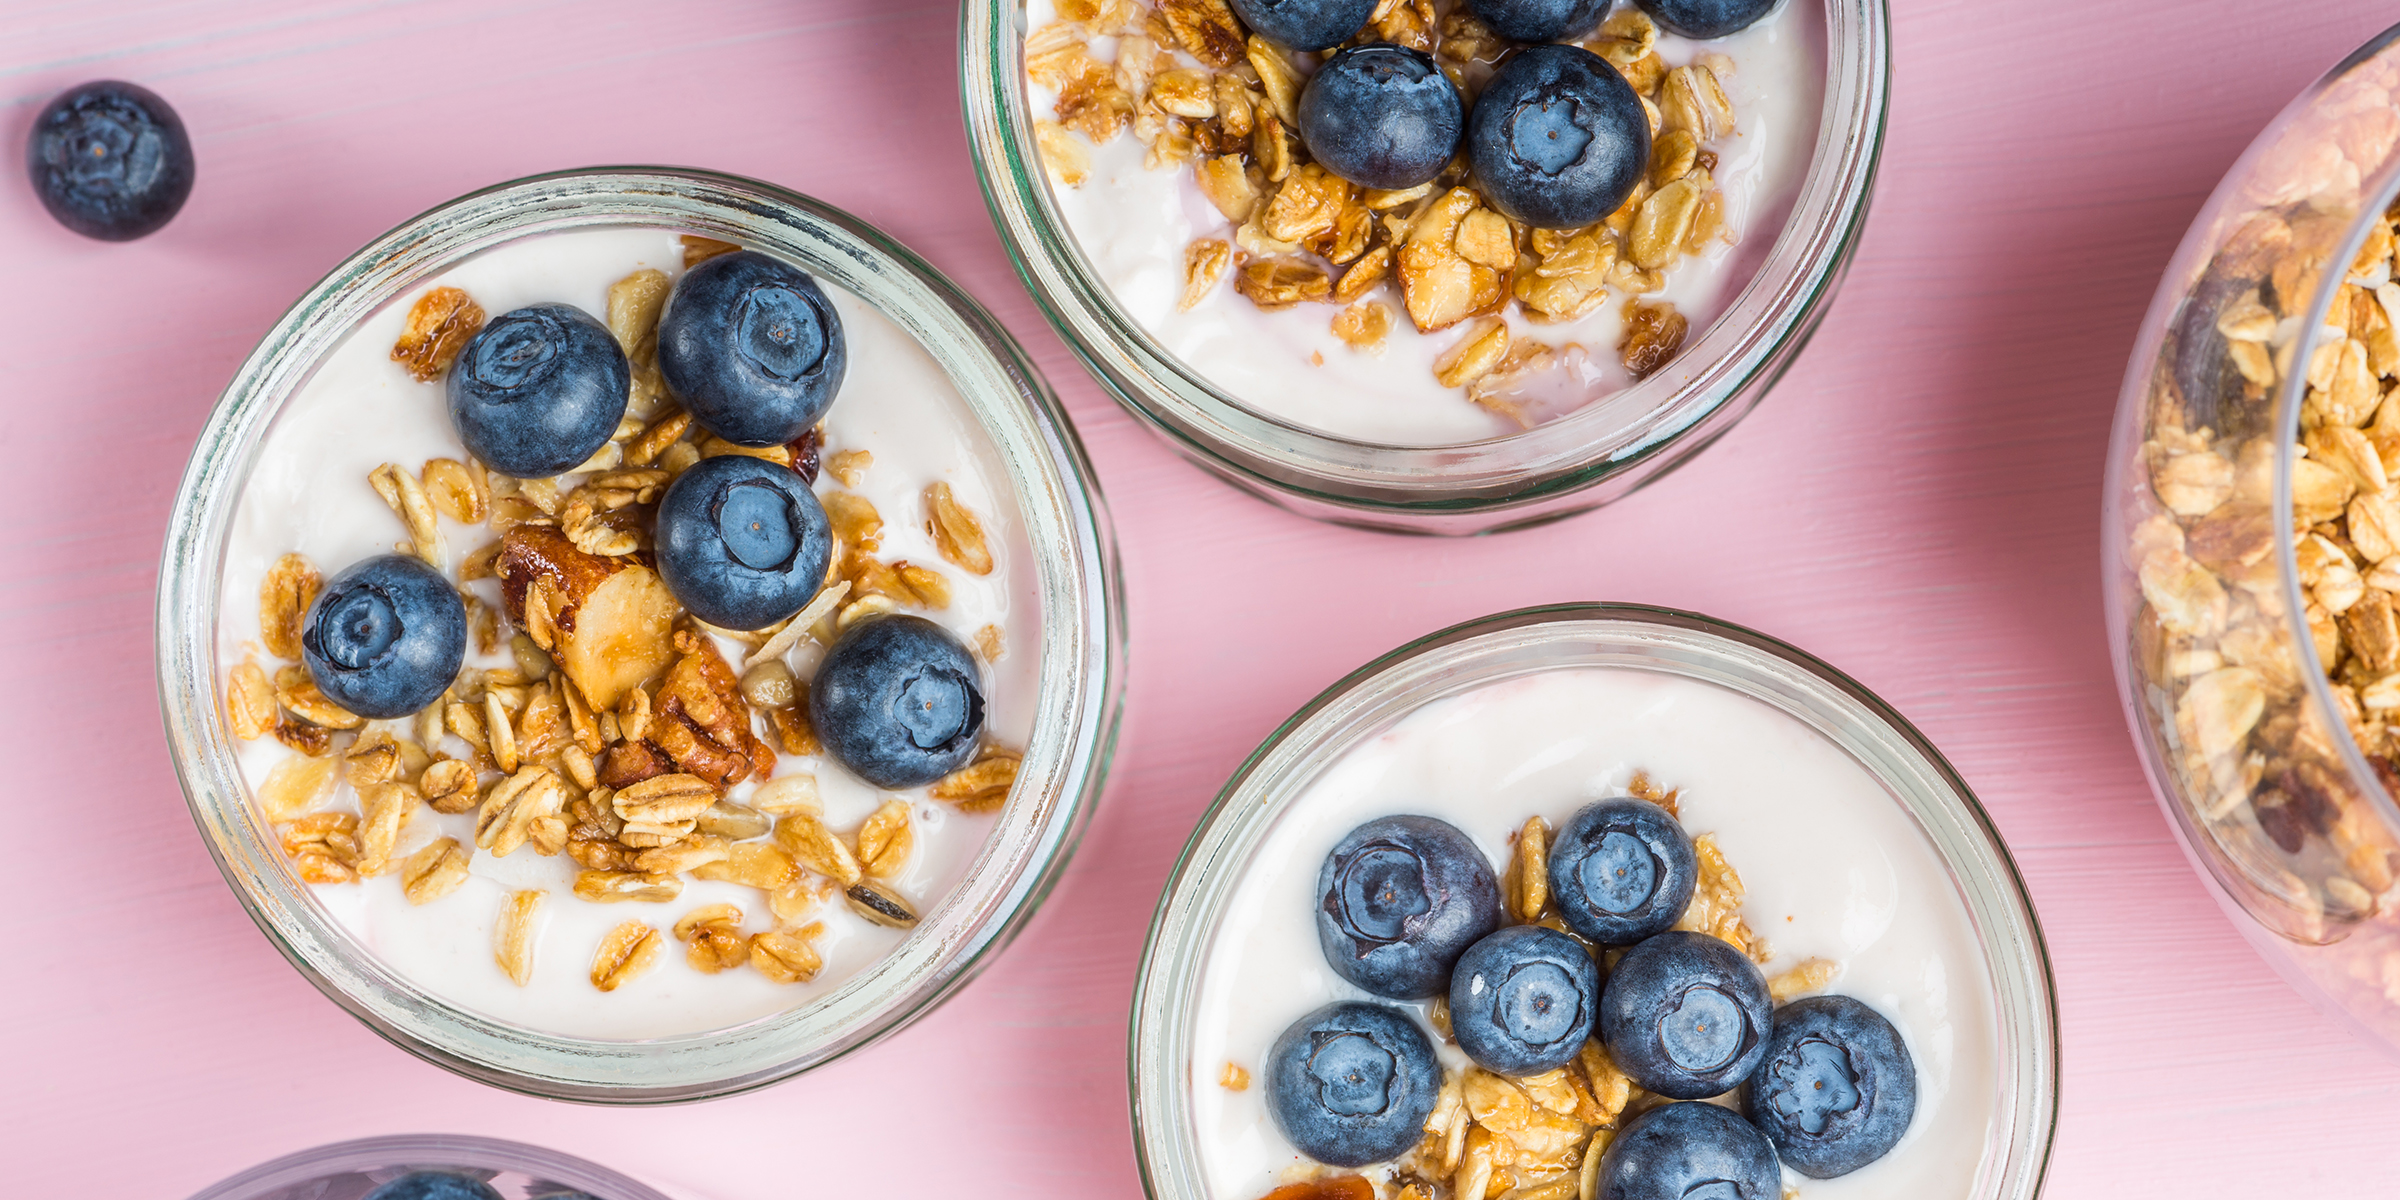 How to lose 10 pounds this spring with a healthy meal plan